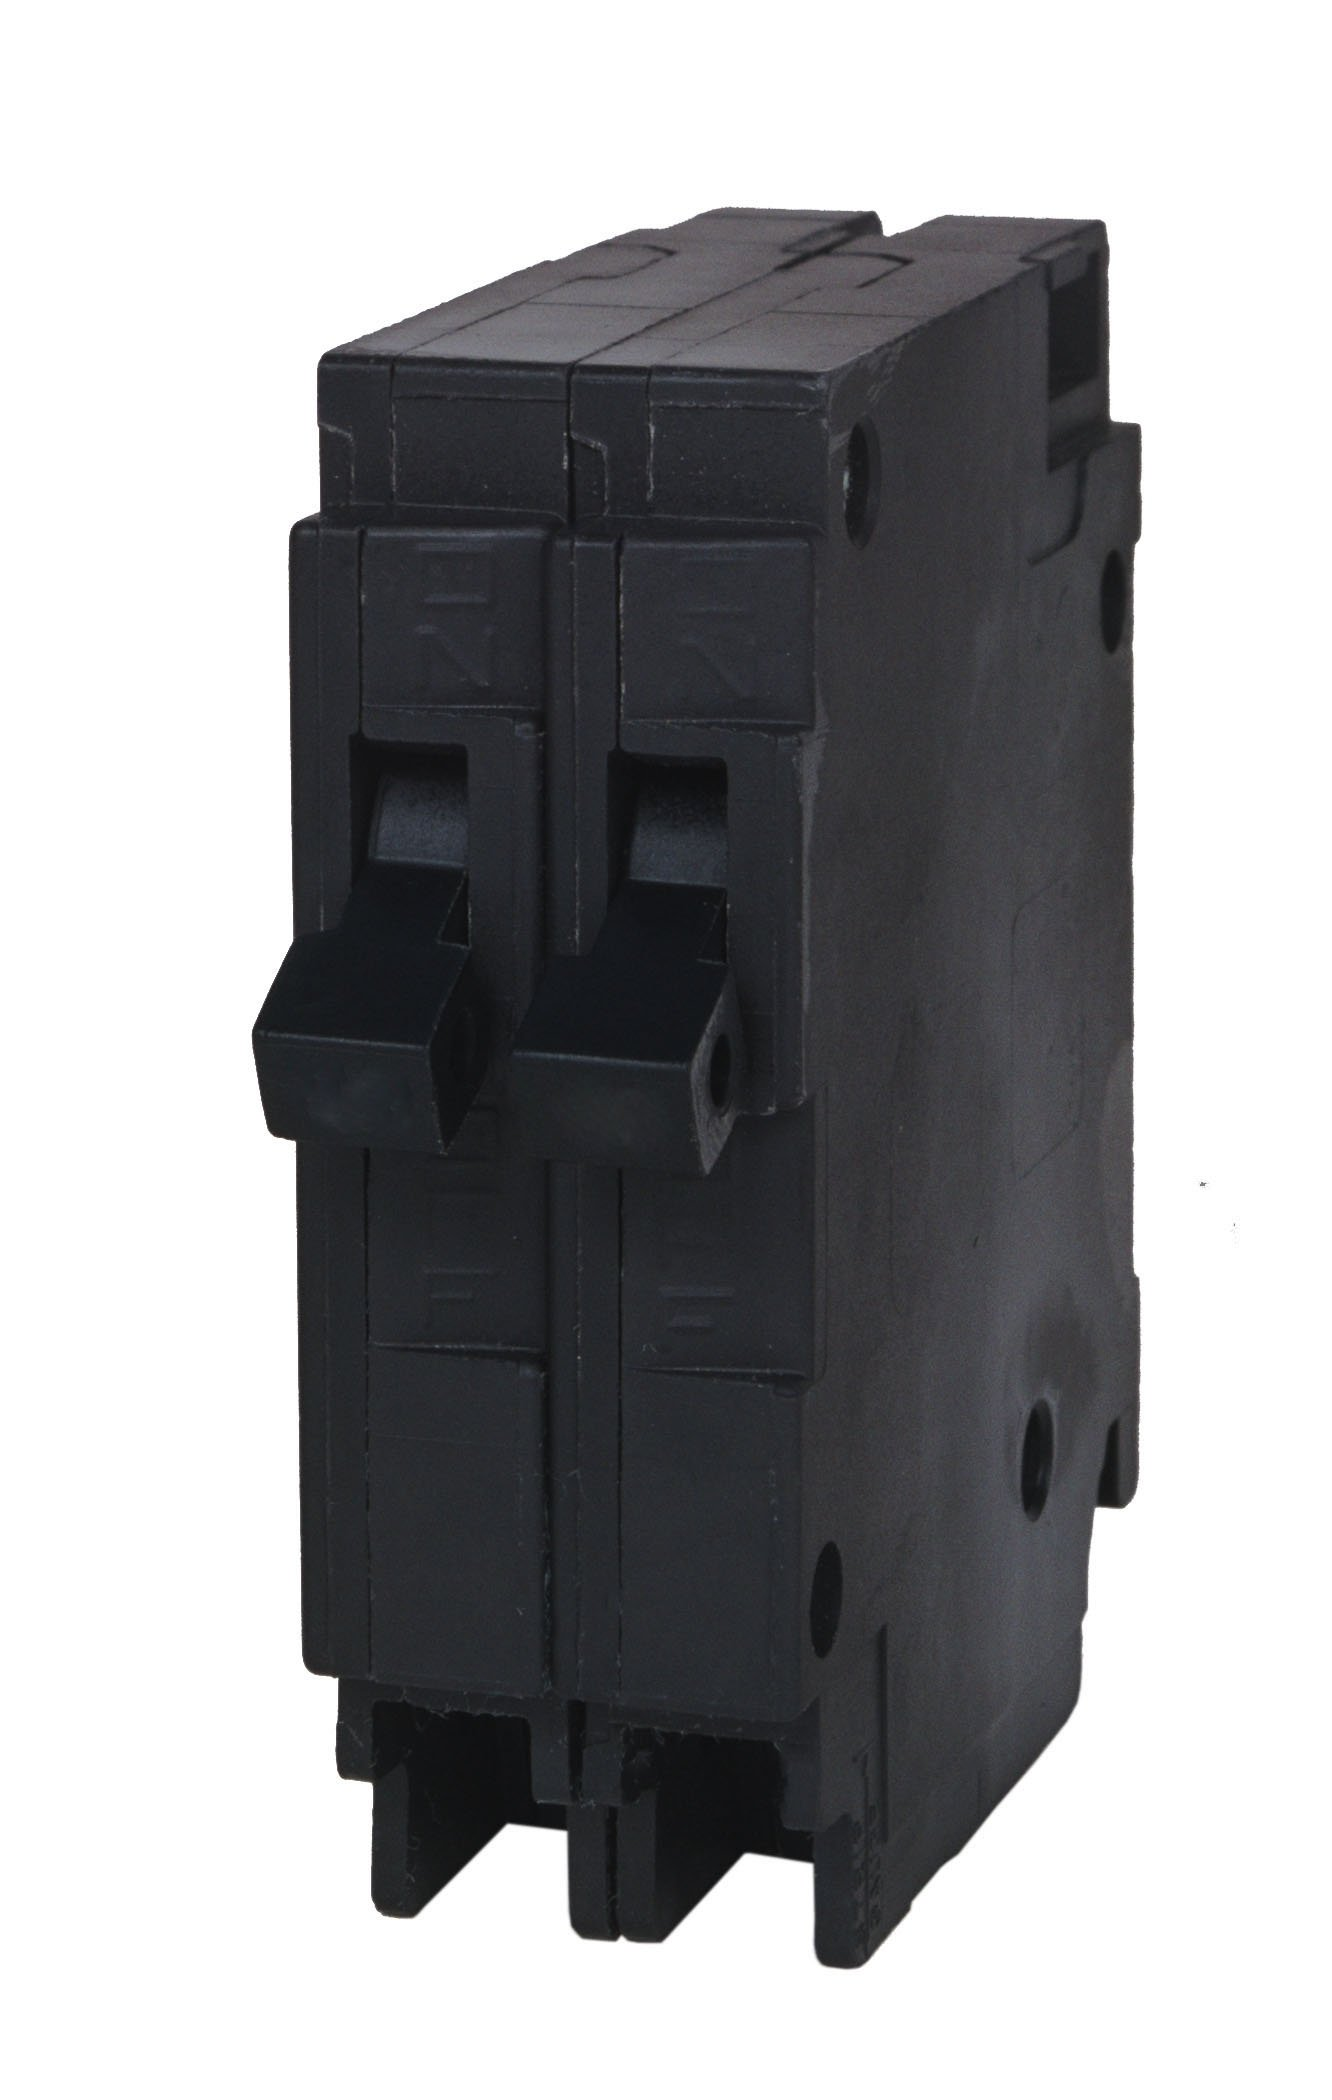 Murray MP1520 One 15-Amp and One 20-Amp Single Pole 120V Circuit Breaker